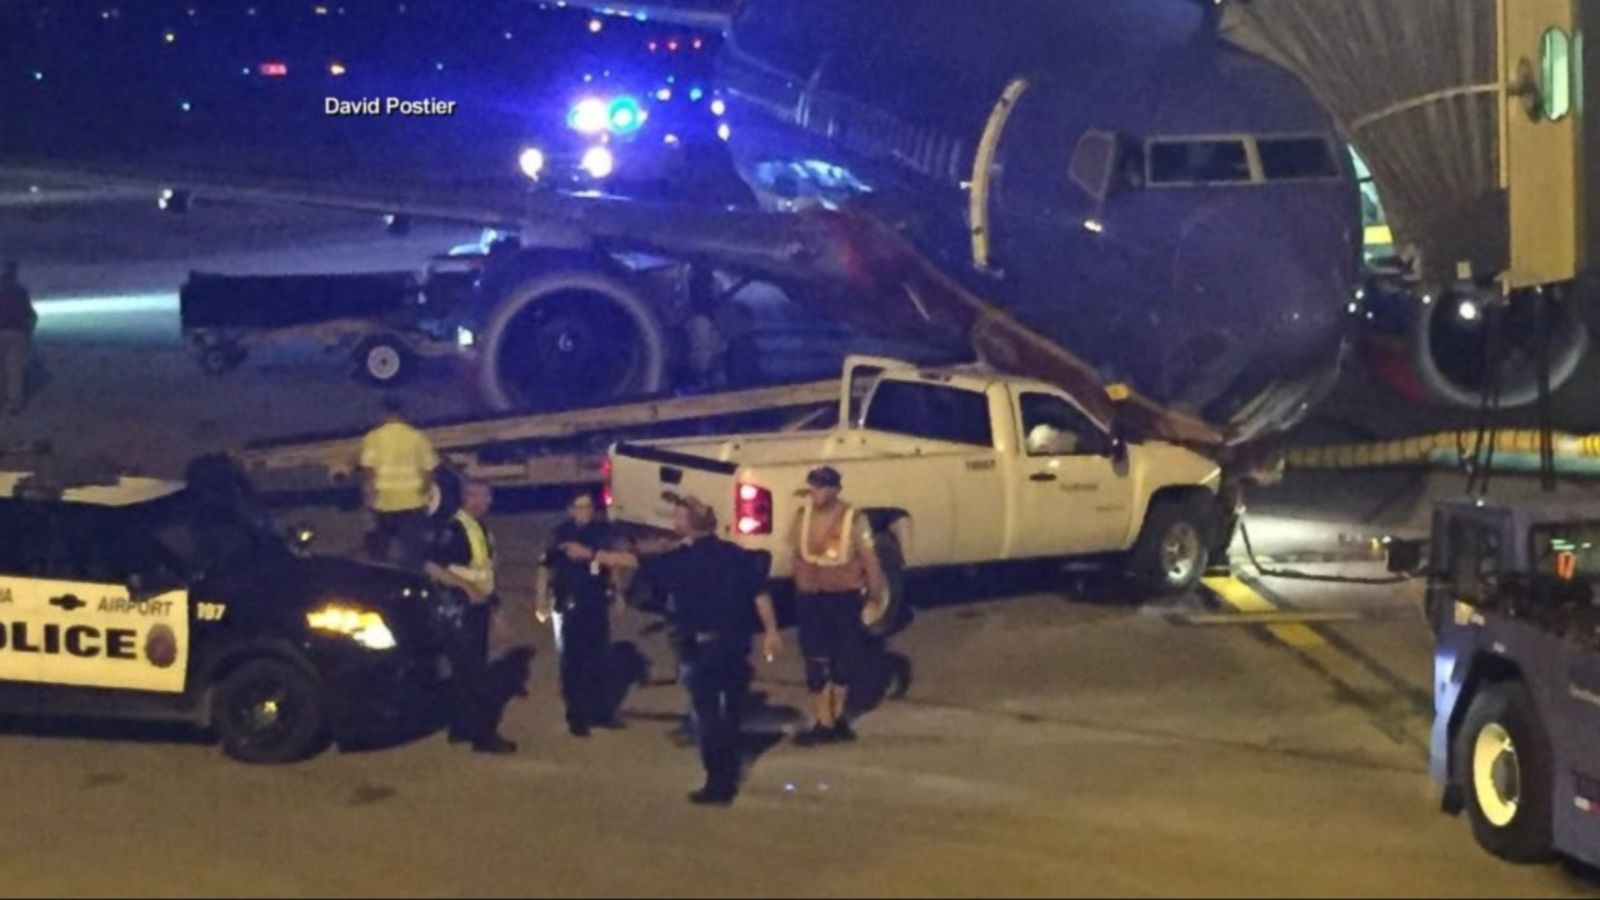 A man being chased by police after breaching a security gate at Omaha's Eppley Airfield airport Thursday night, proceeded to strip down to his boxer shorts, steal a truck on the runway and ram it into the nose of a Southwest Airlines aircraft, authorities